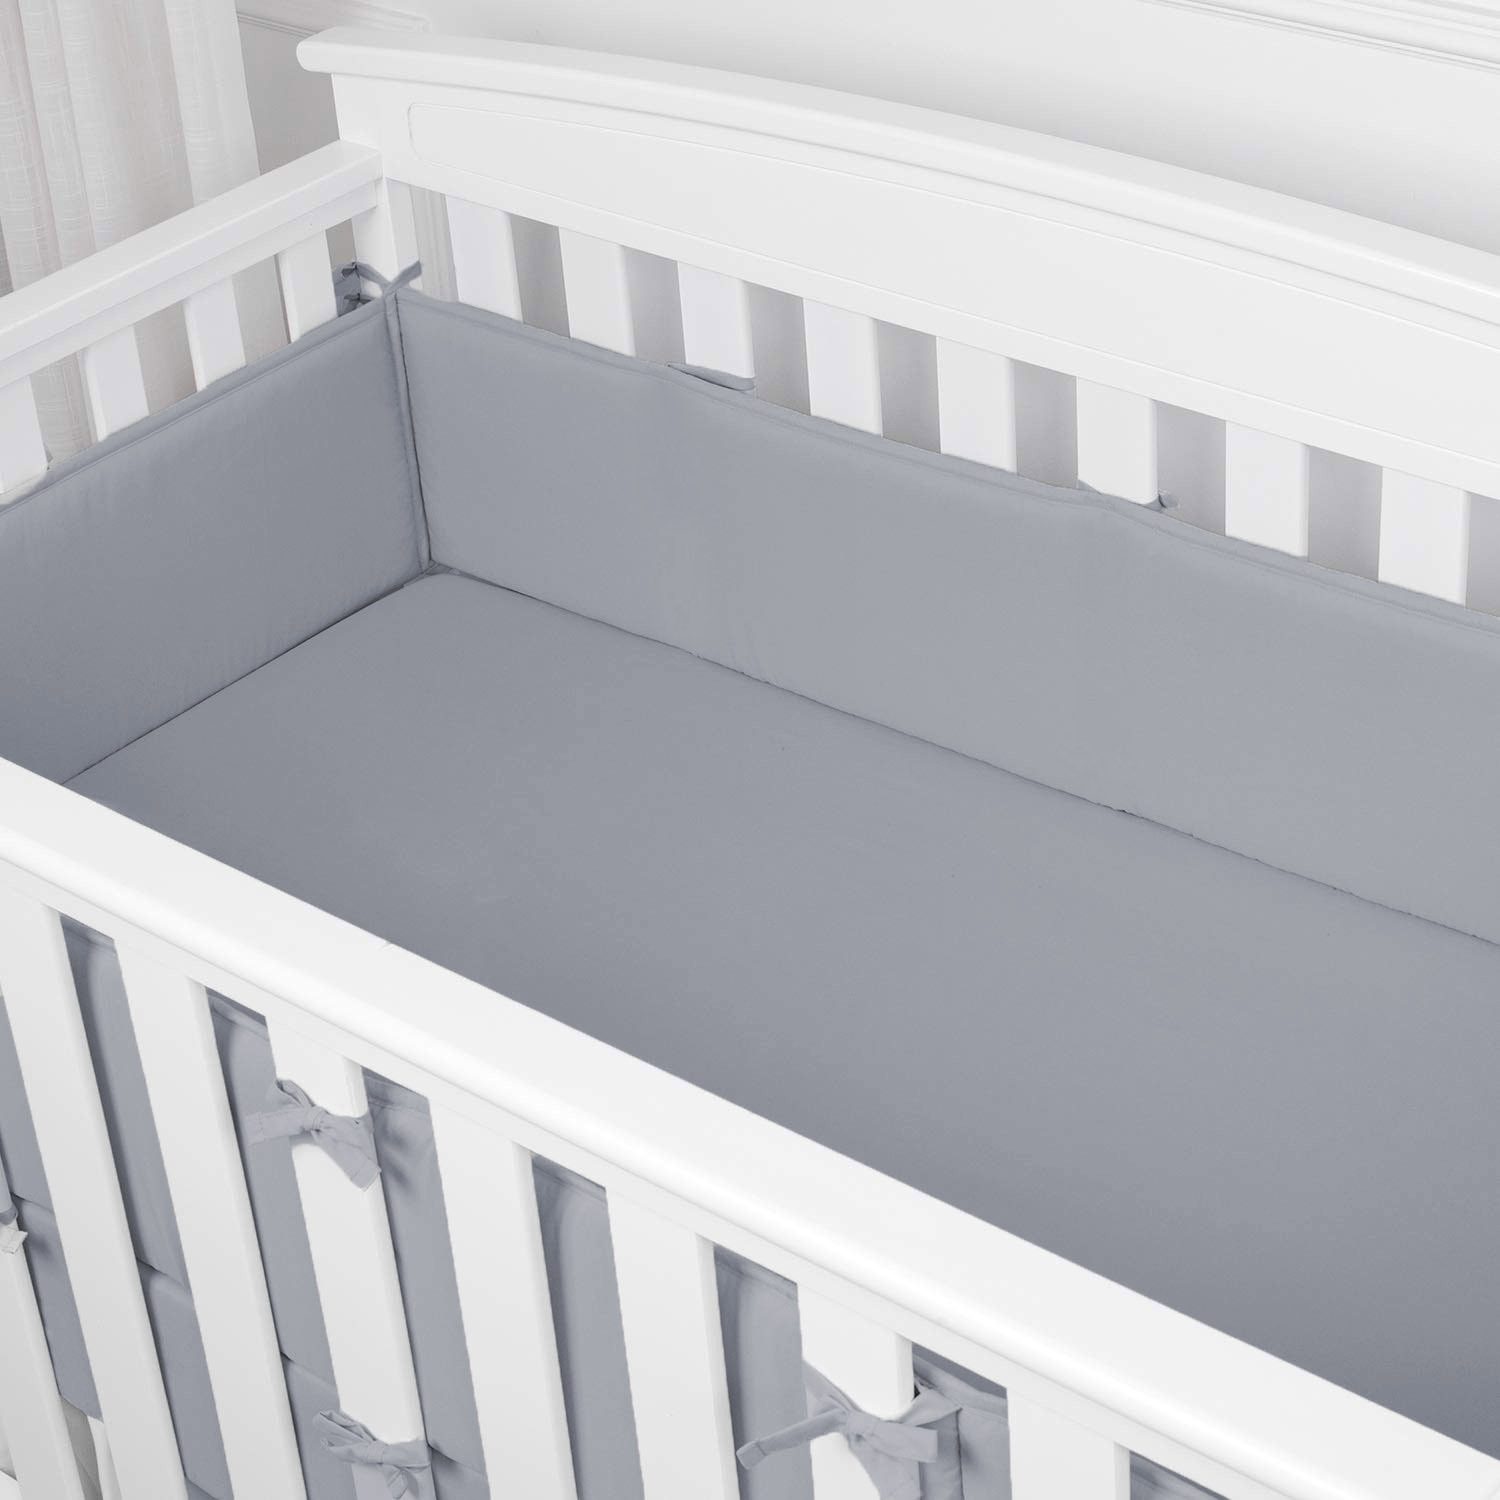 New baby crib four-piece baby guardrail bed circumference children's bed protection fence maternal and child products 2021